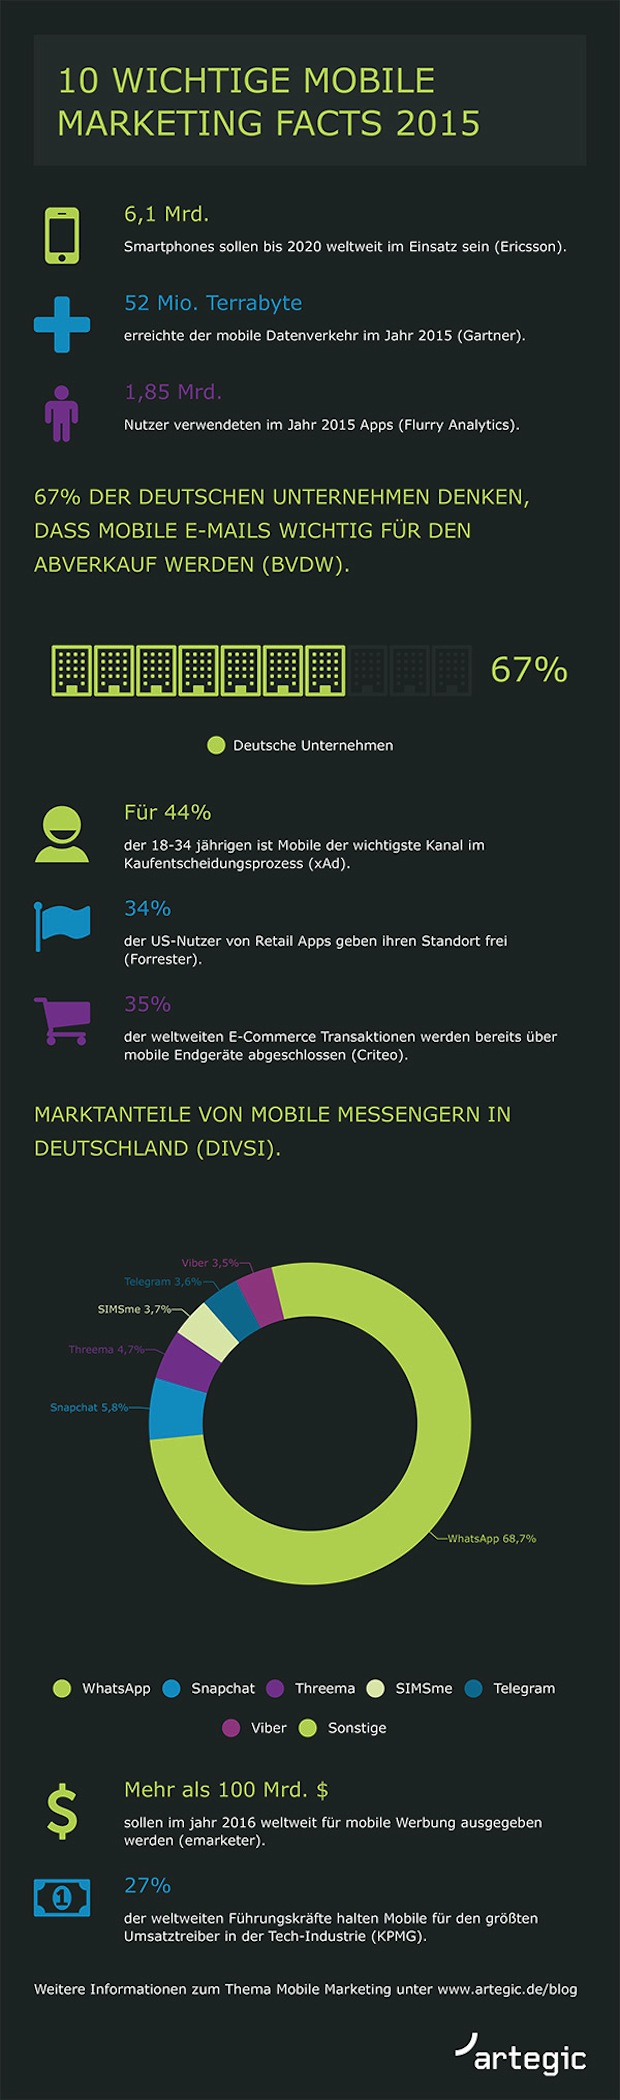 Photo of Rückblick: 10 wichtige Mobile Marketing Facts 2015